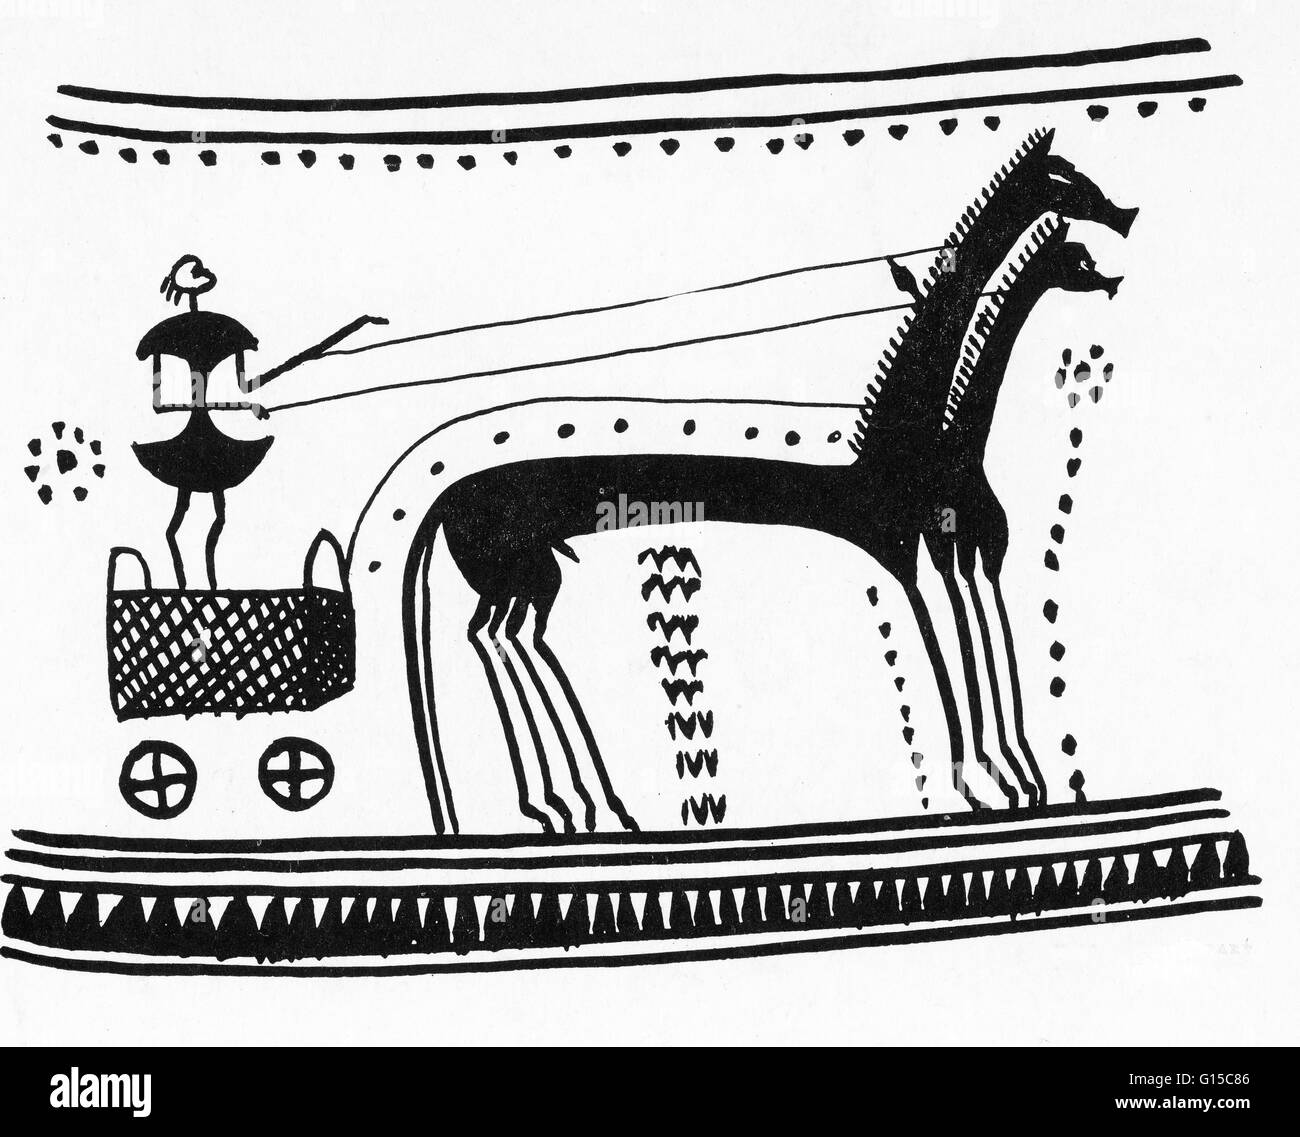 Athenian chariot. Illustration from 'Der Wagen in der Religion' by Prausnitz. - Stock Image